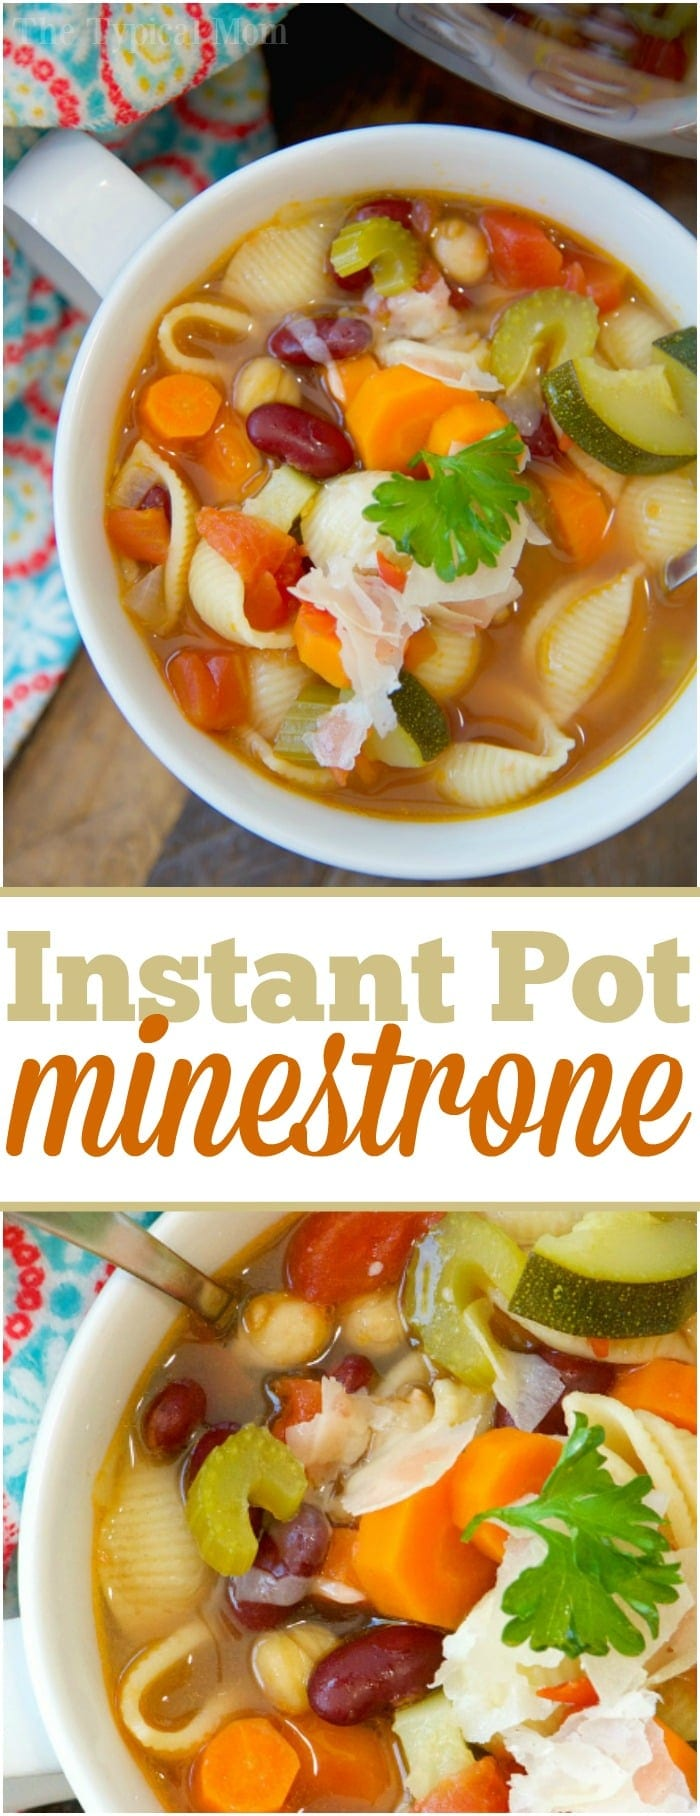 This easy Instant Pot minestrone soup recipe is full of flavor! Healthy and vegetarian too, my kids raved that this was their favorite pressure cooker soup.